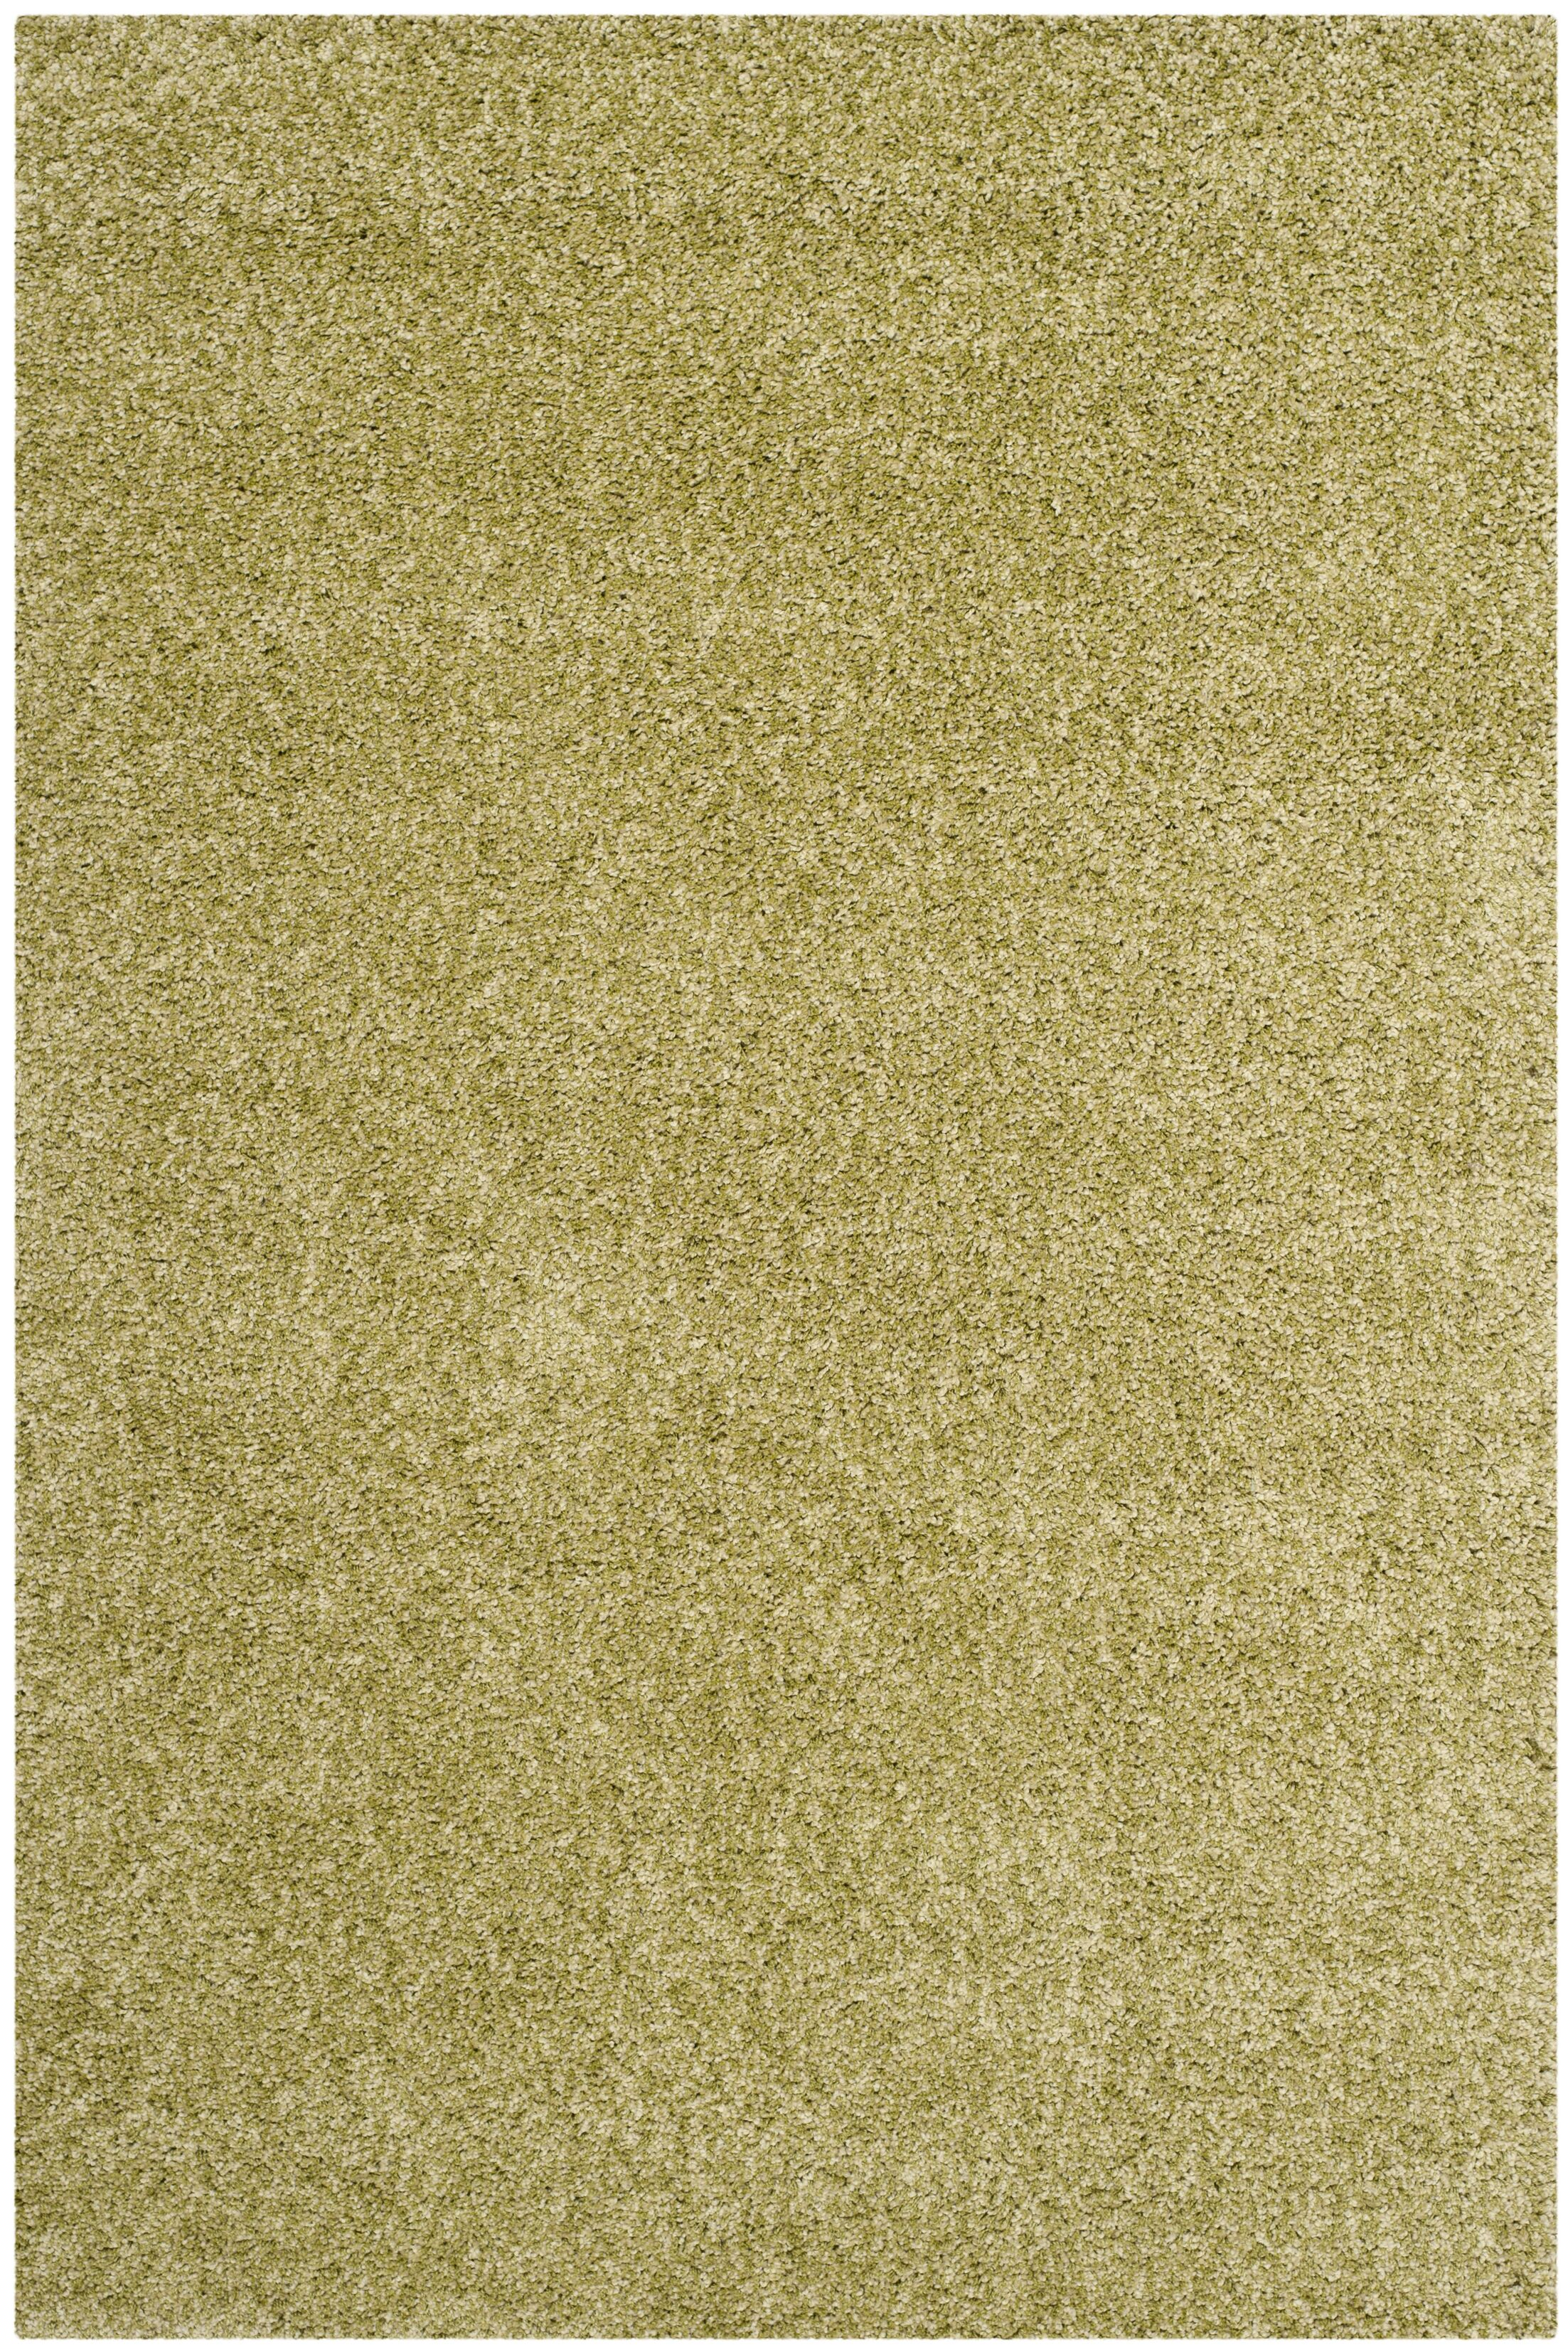 Starr Hill Green Area Rug Rug Size: Rectangle 5'3